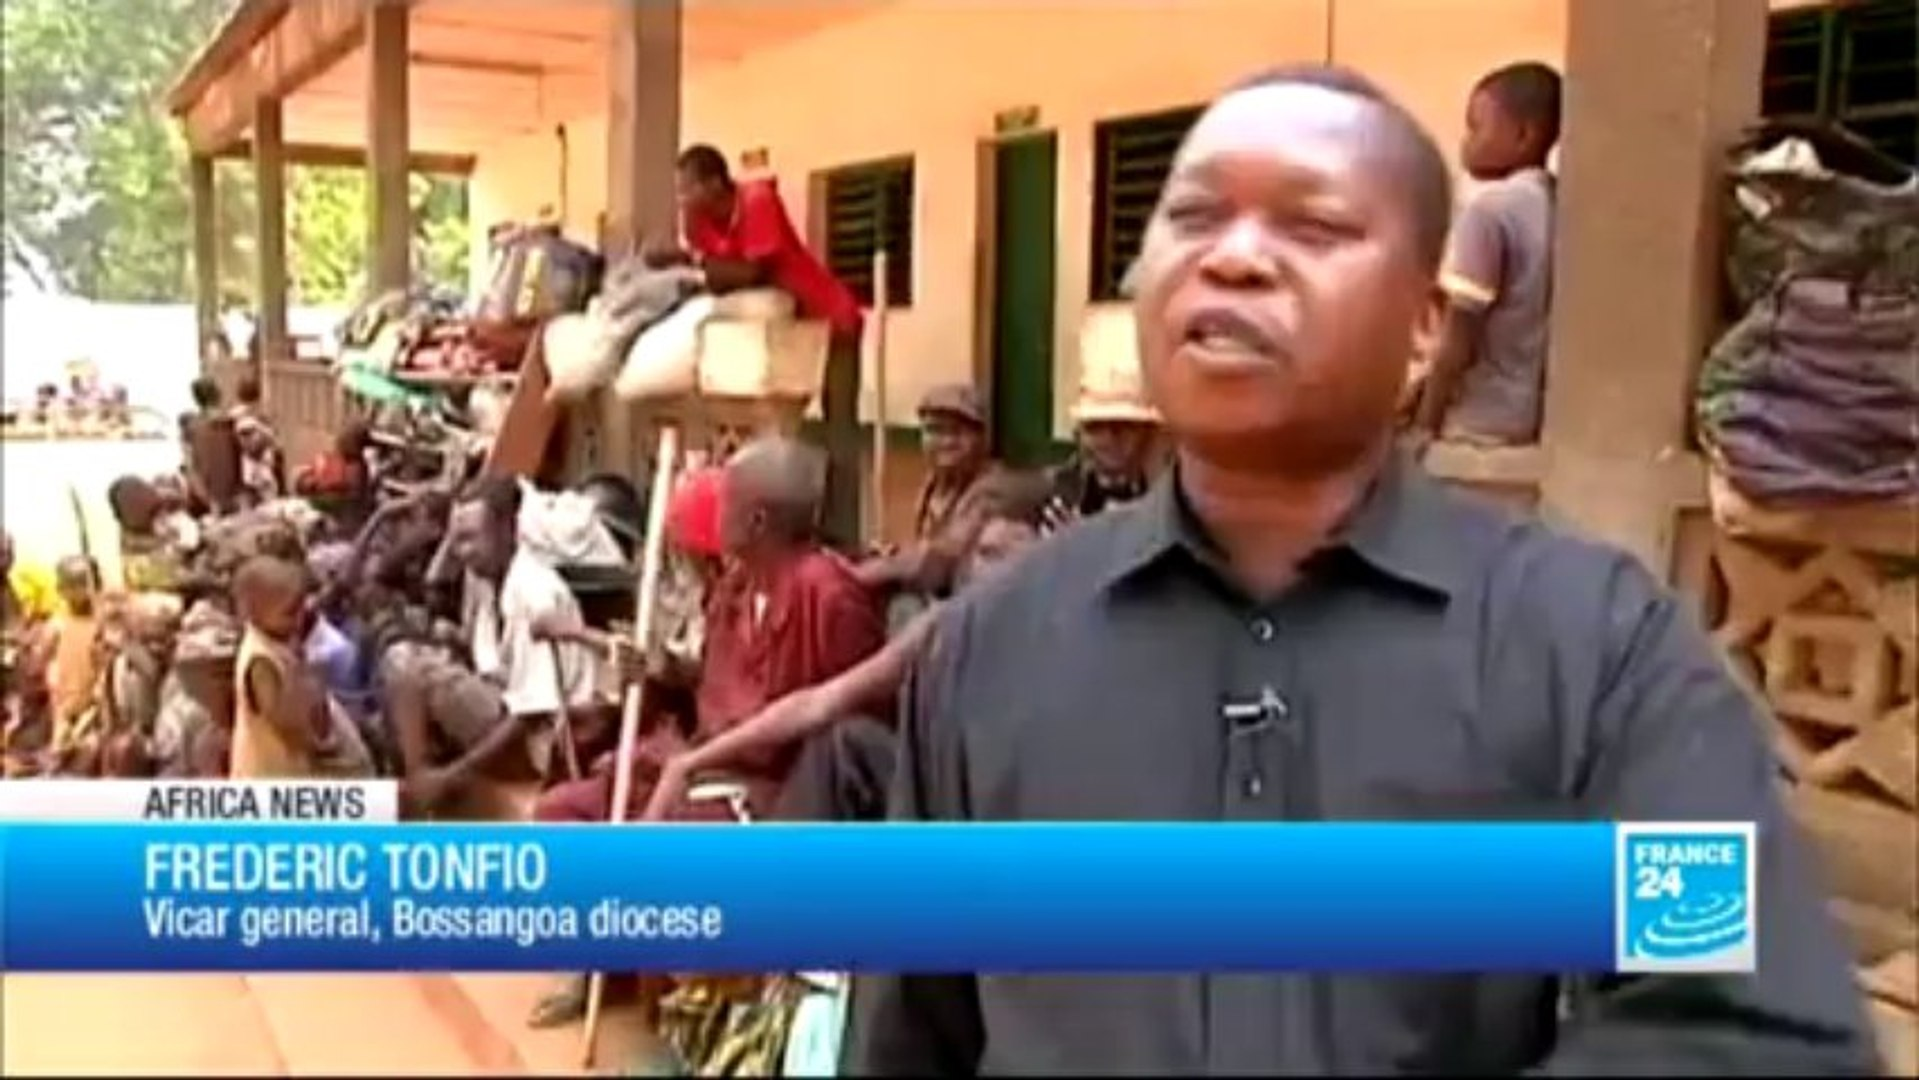 AFRICA NEWS - Mali vote counting continues